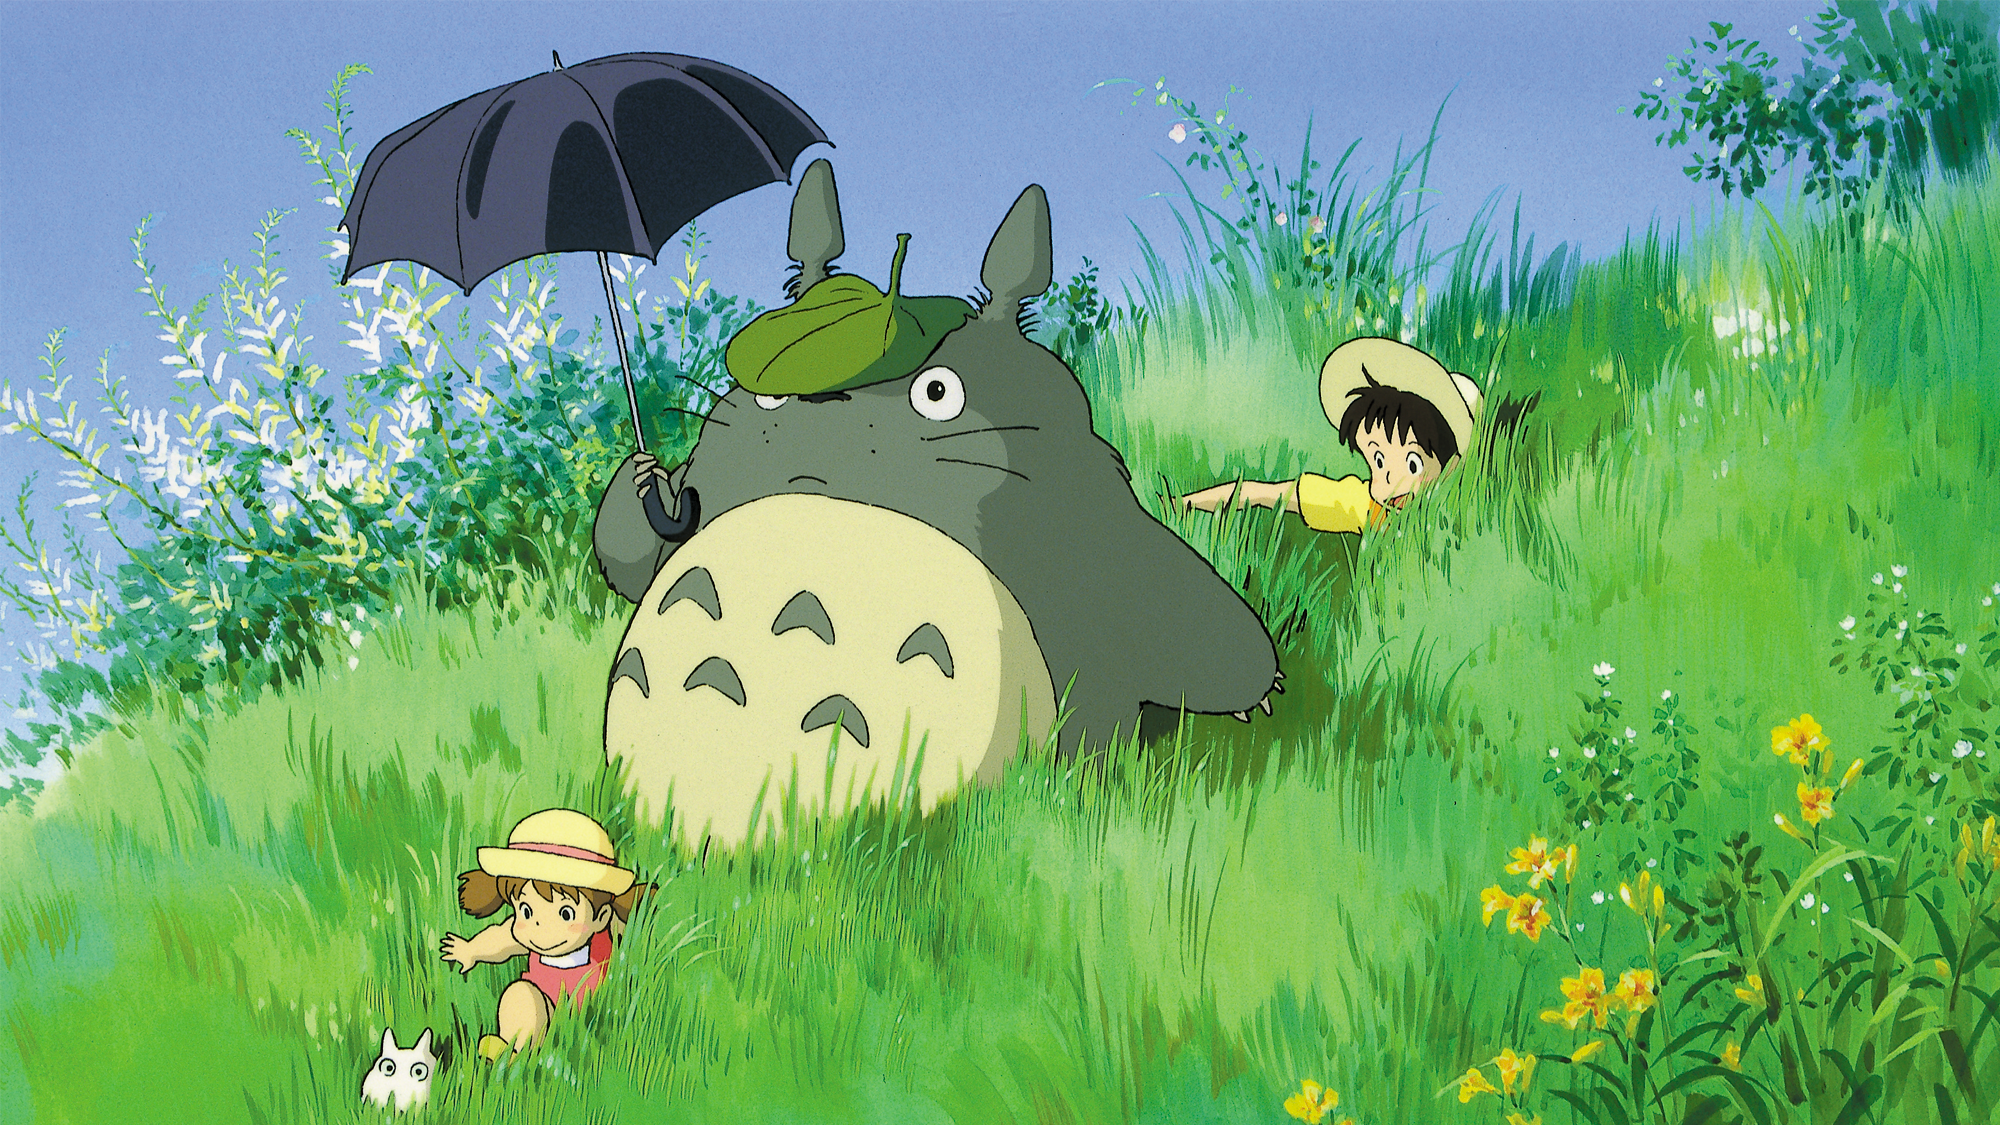 Month-long Studio Ghibli showcase coming to Australian cinemas